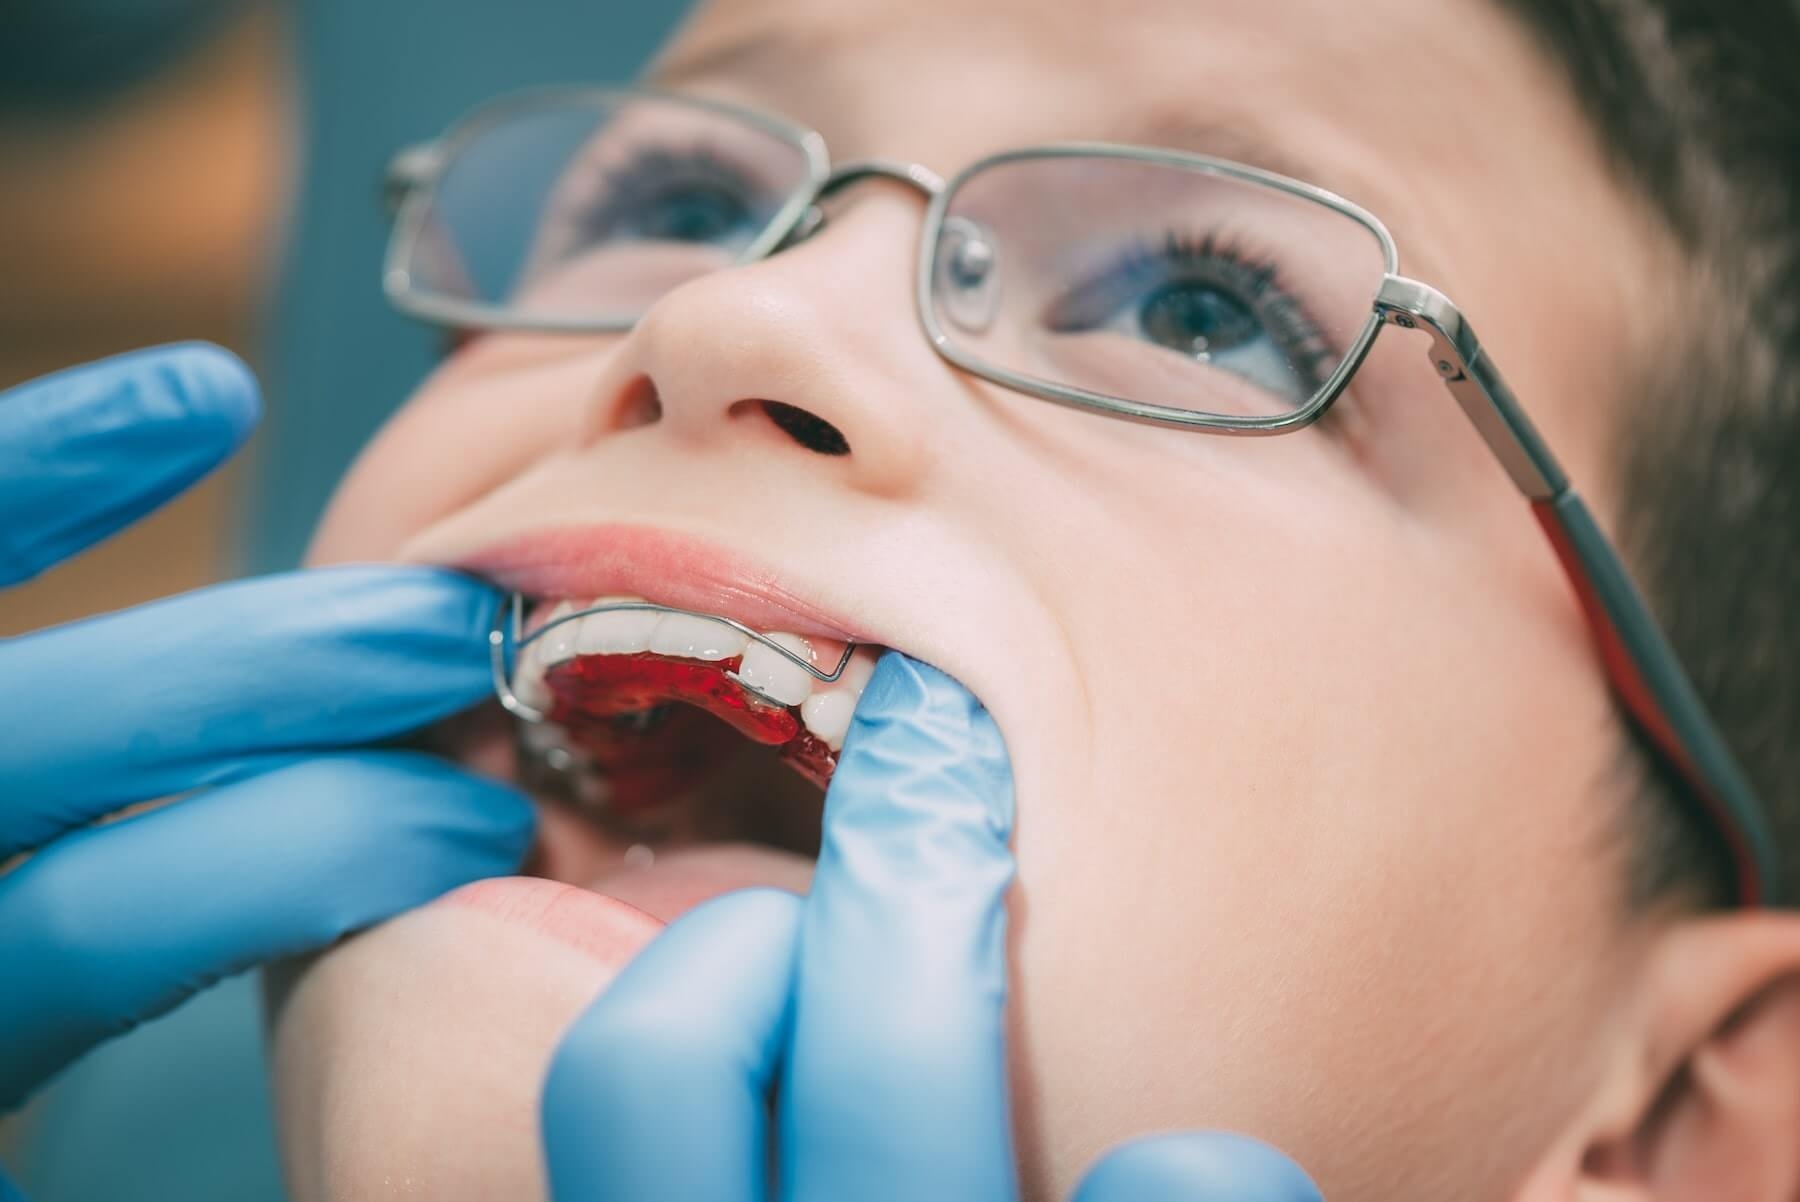 The Differences Between Orthotropics and Orthodontics